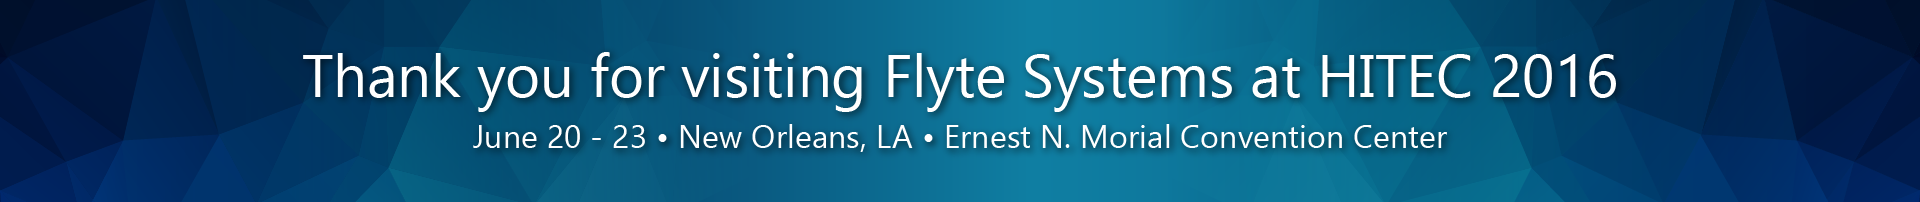 Thank You for Visiting Flyte Systems at HITEC 2016